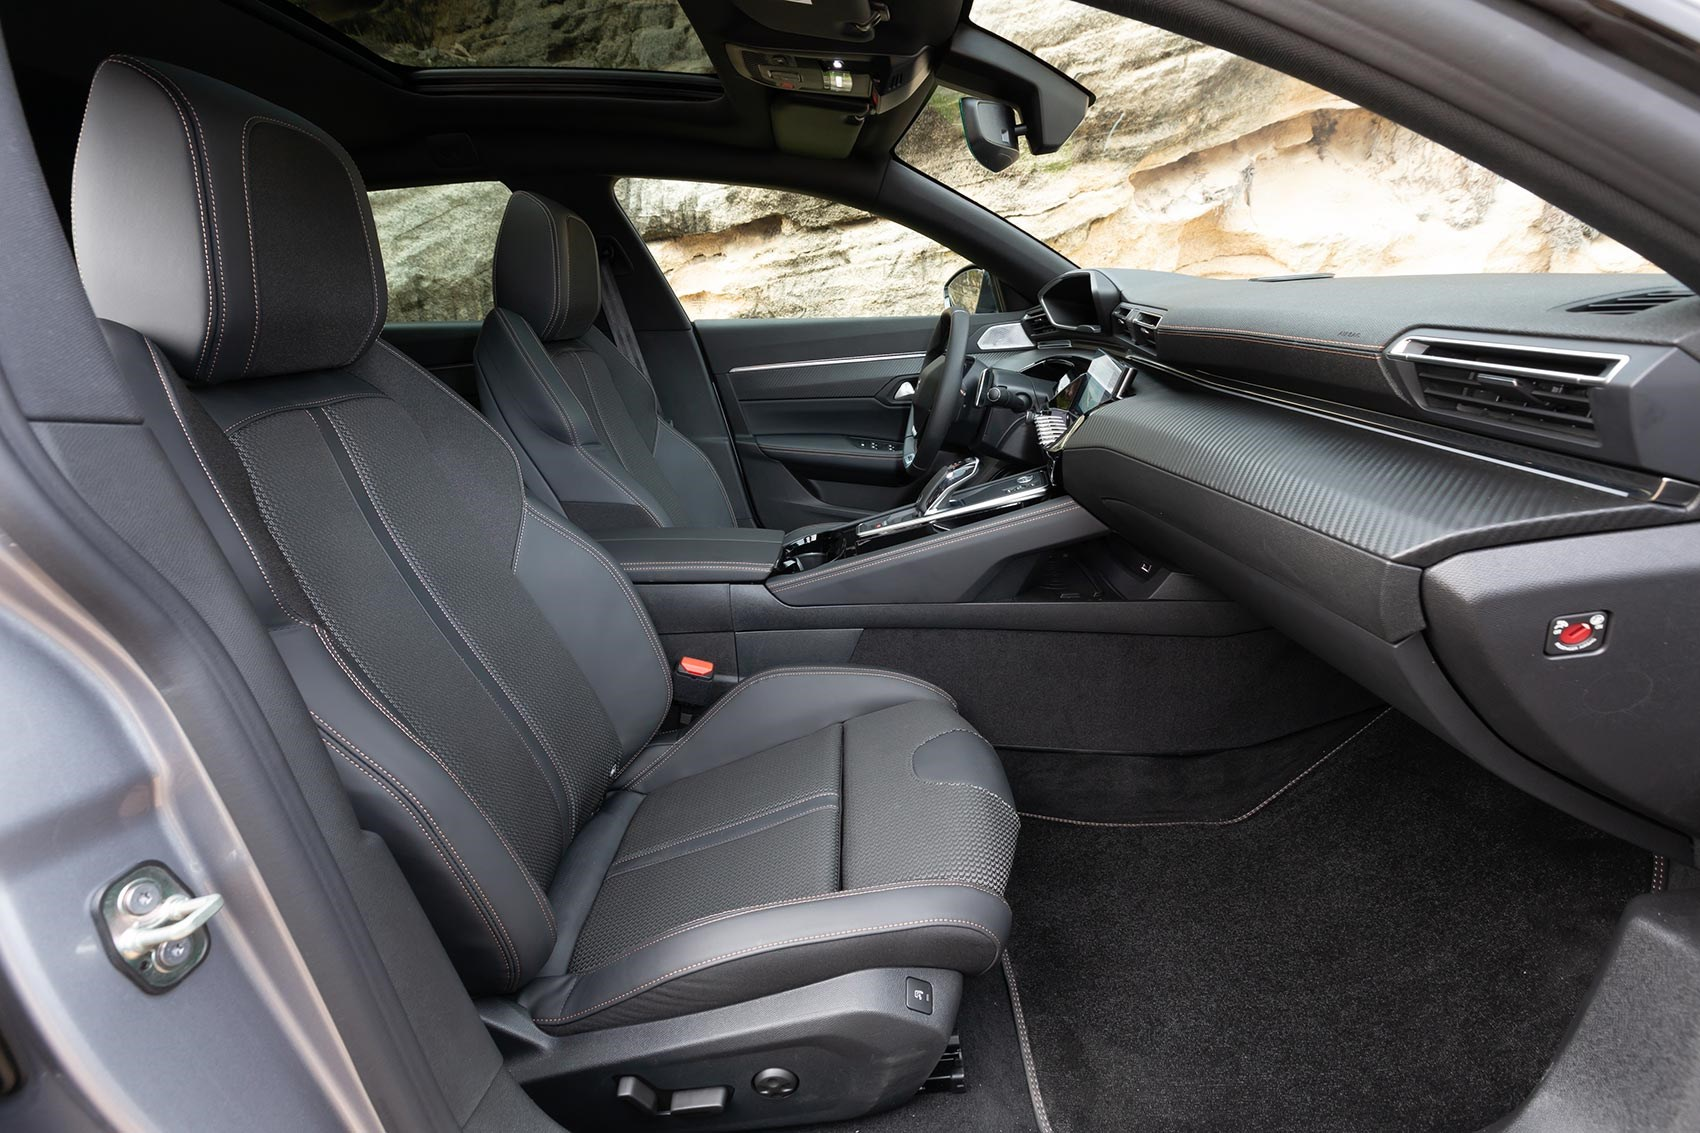 Peugeot 508 SW cabin and front seats